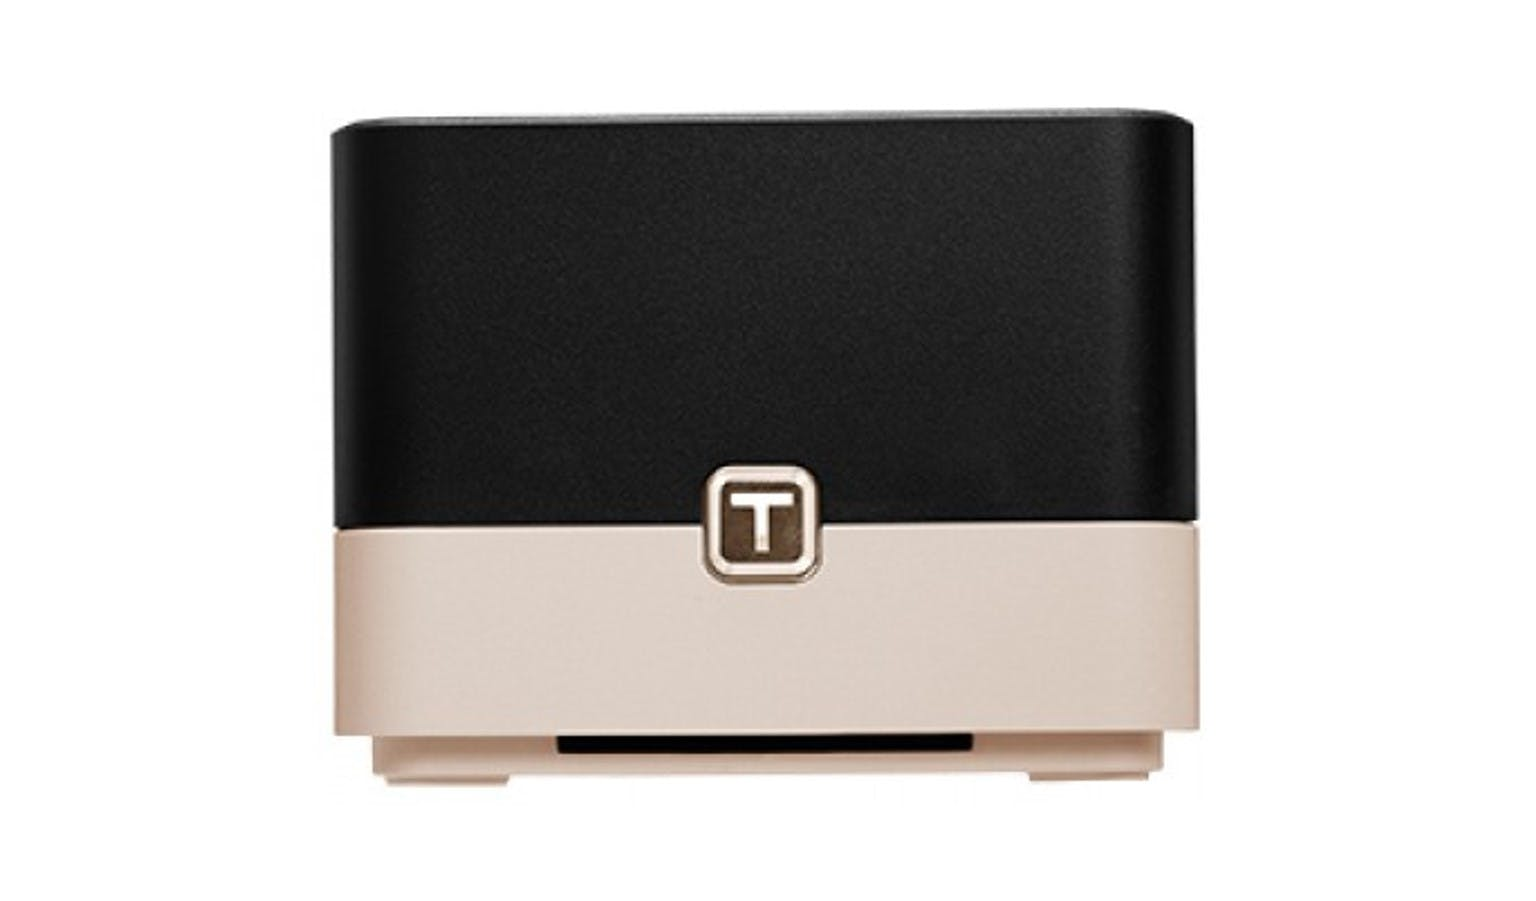 TOTOLINK T10 AC1200 Smart Home Wifi Router